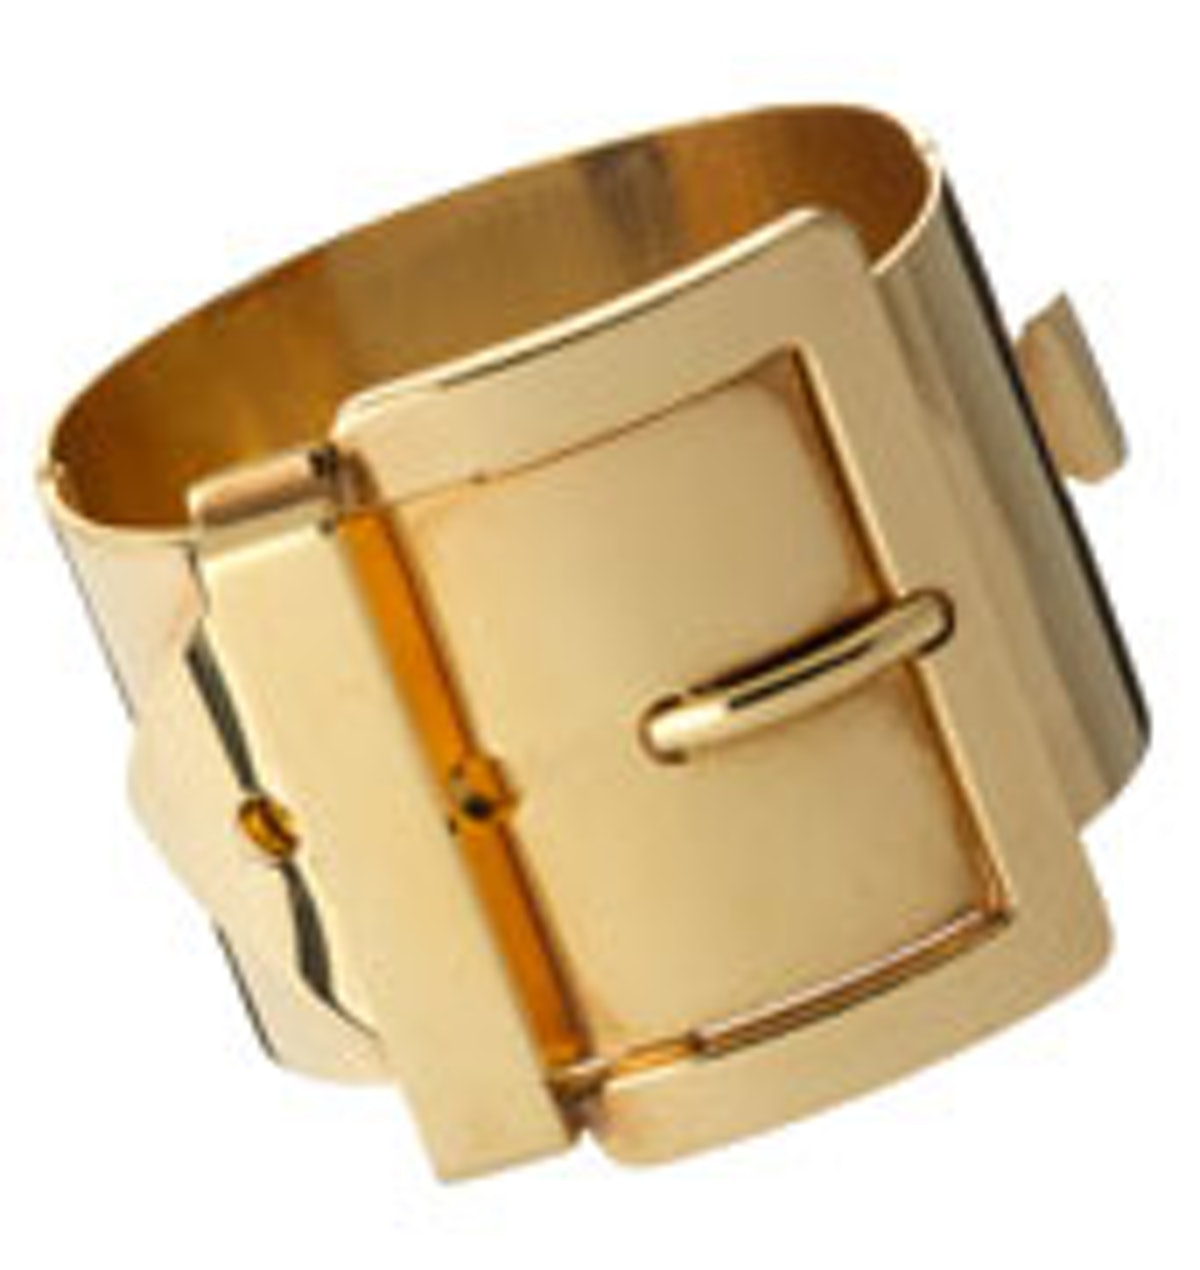 acss-gold-jewelry-search.jpg